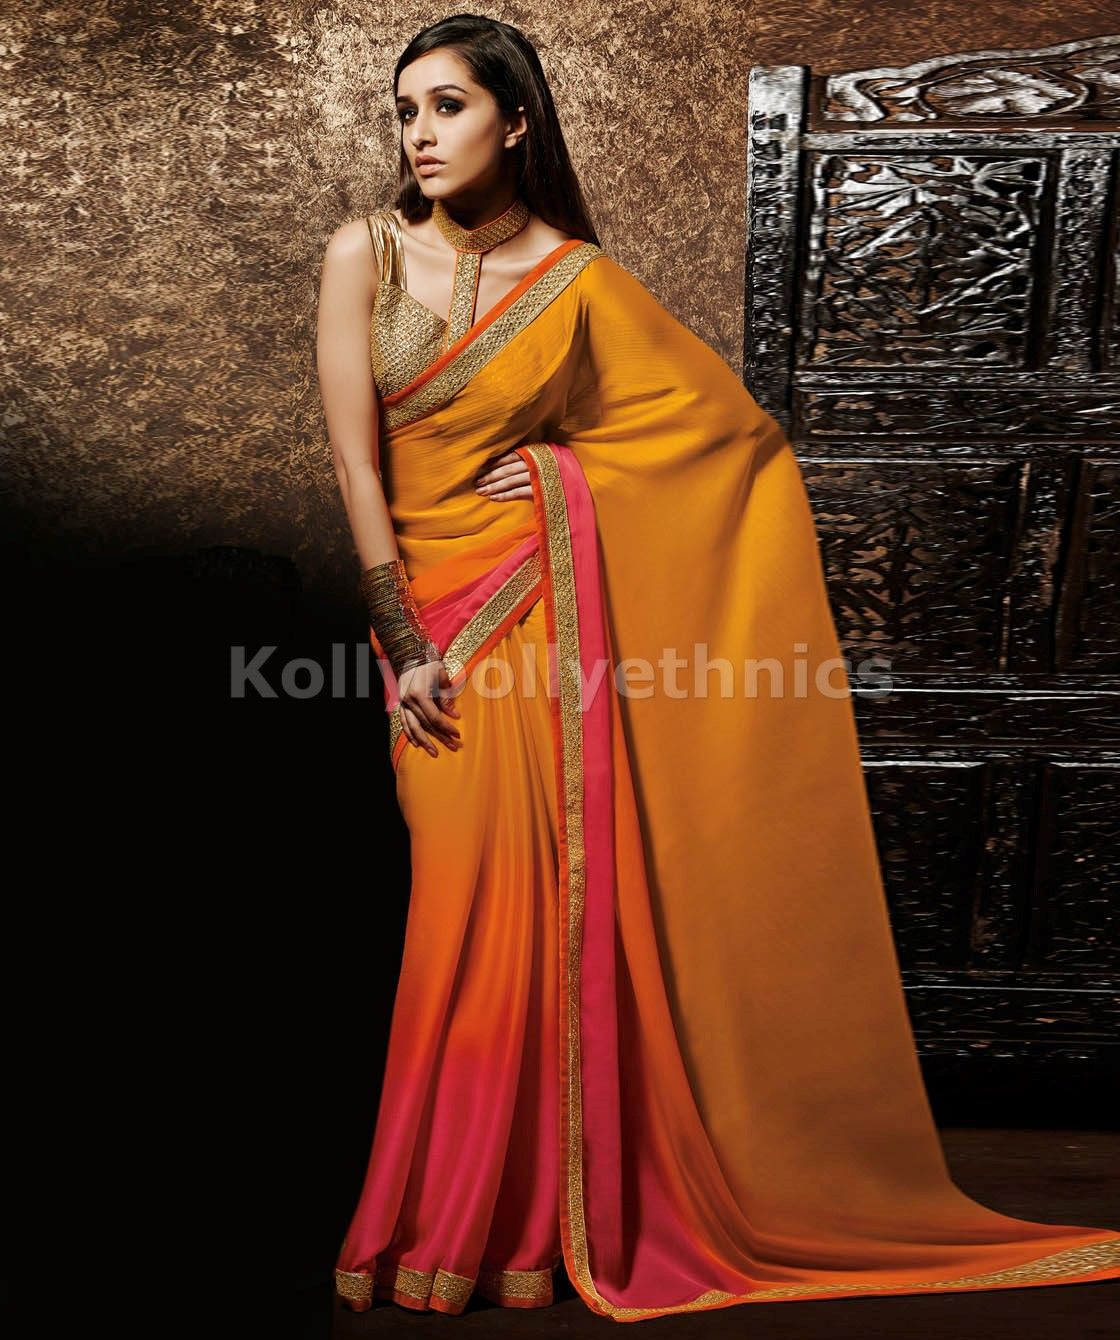 Designer saris online shopping in usa uk canadabuy shaded pink and